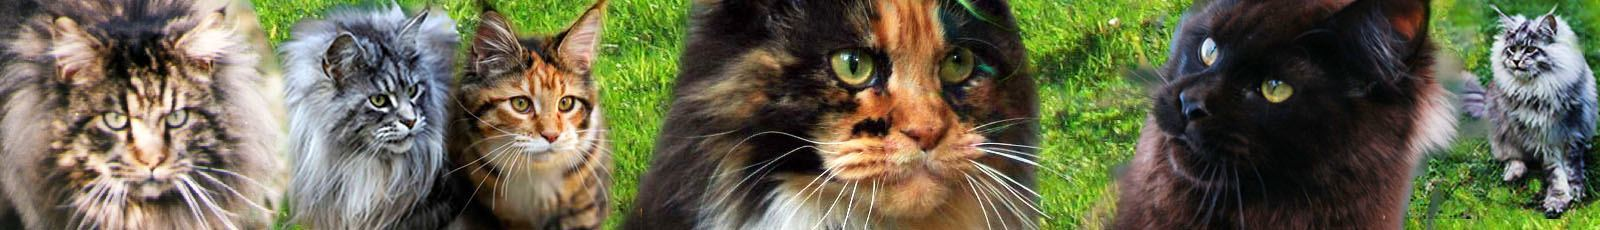 chatons maine coons Ile de France